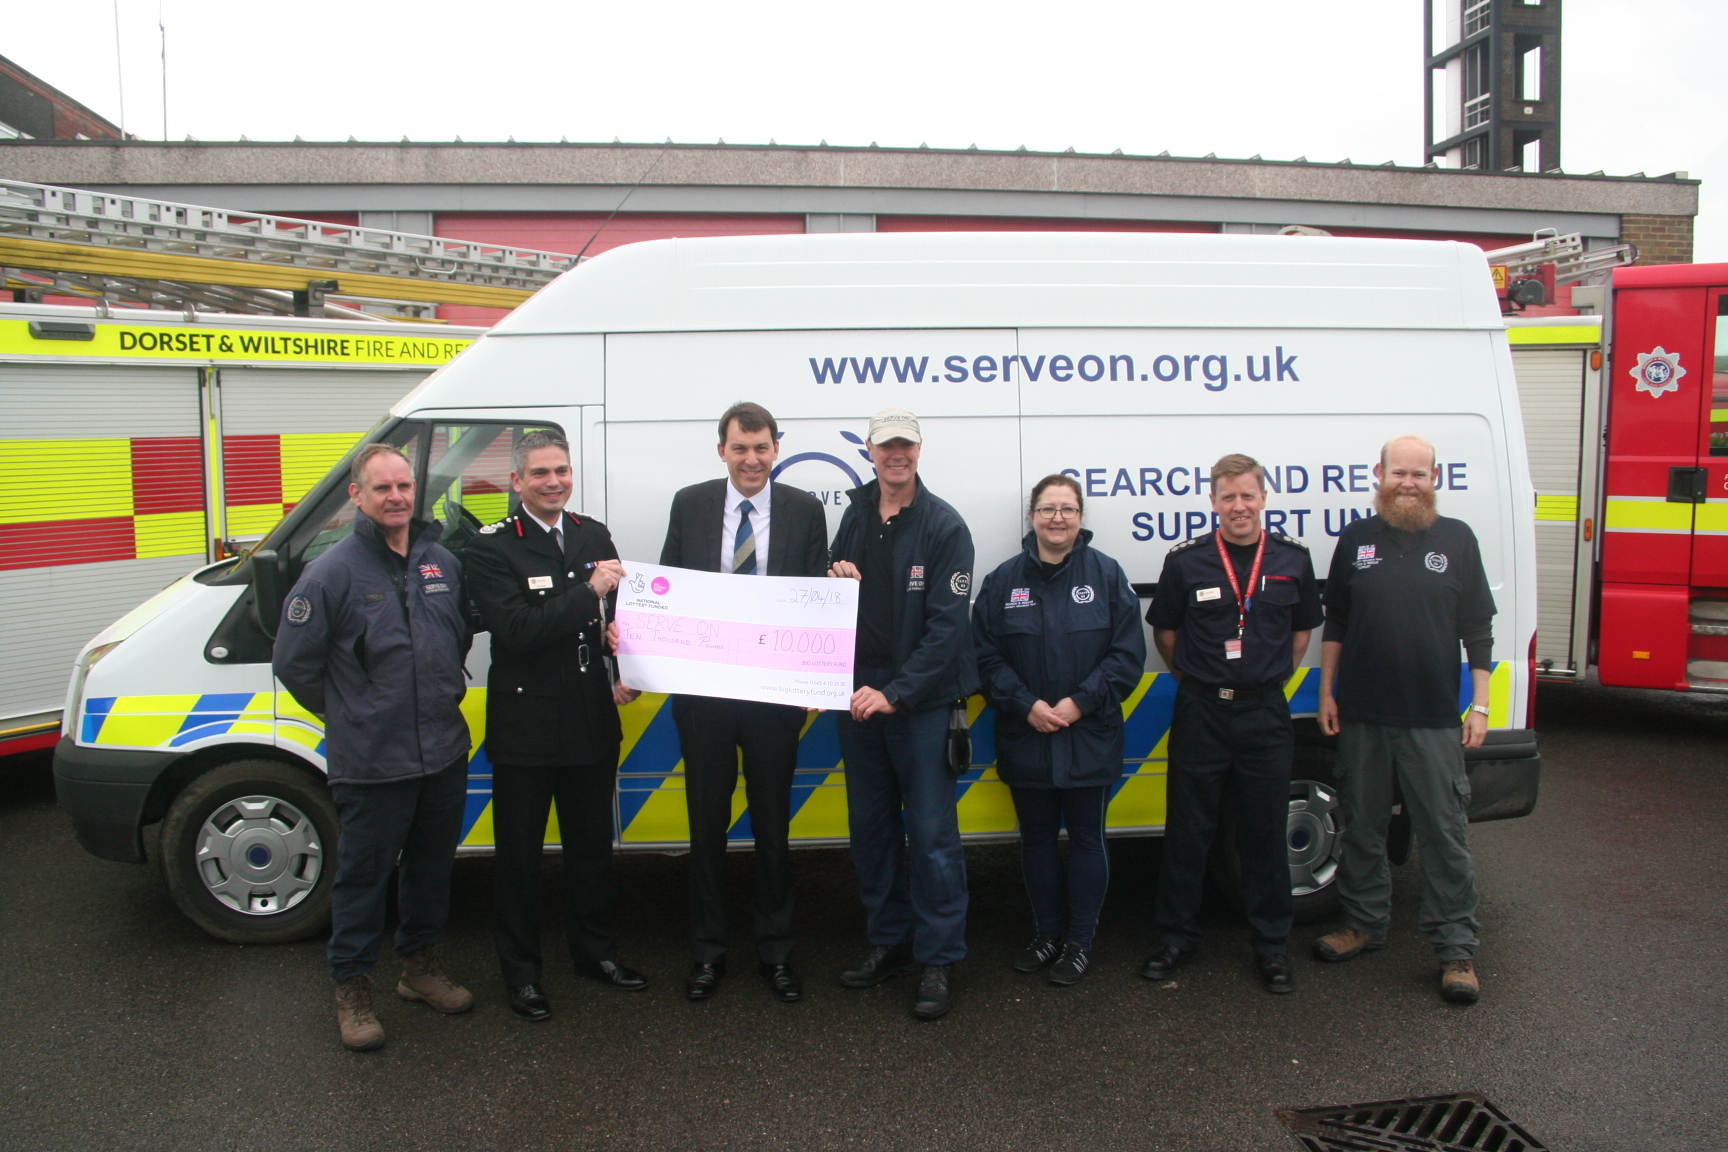 John Glen with members of Serve On and the fire service